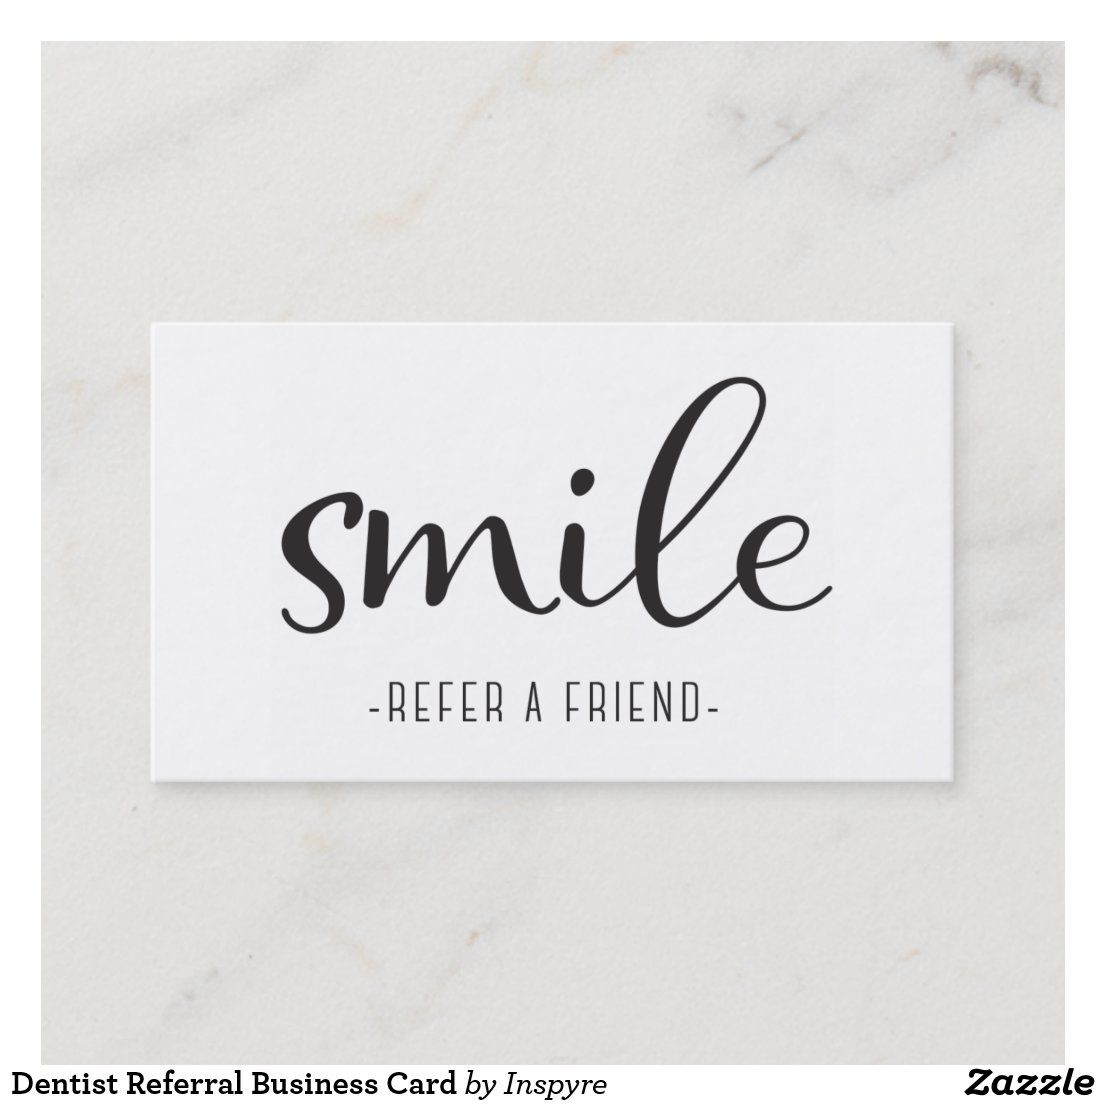 Dentist Referral Business Card Zazzle Com Standard Business Card Size Business Card Size Business Cards